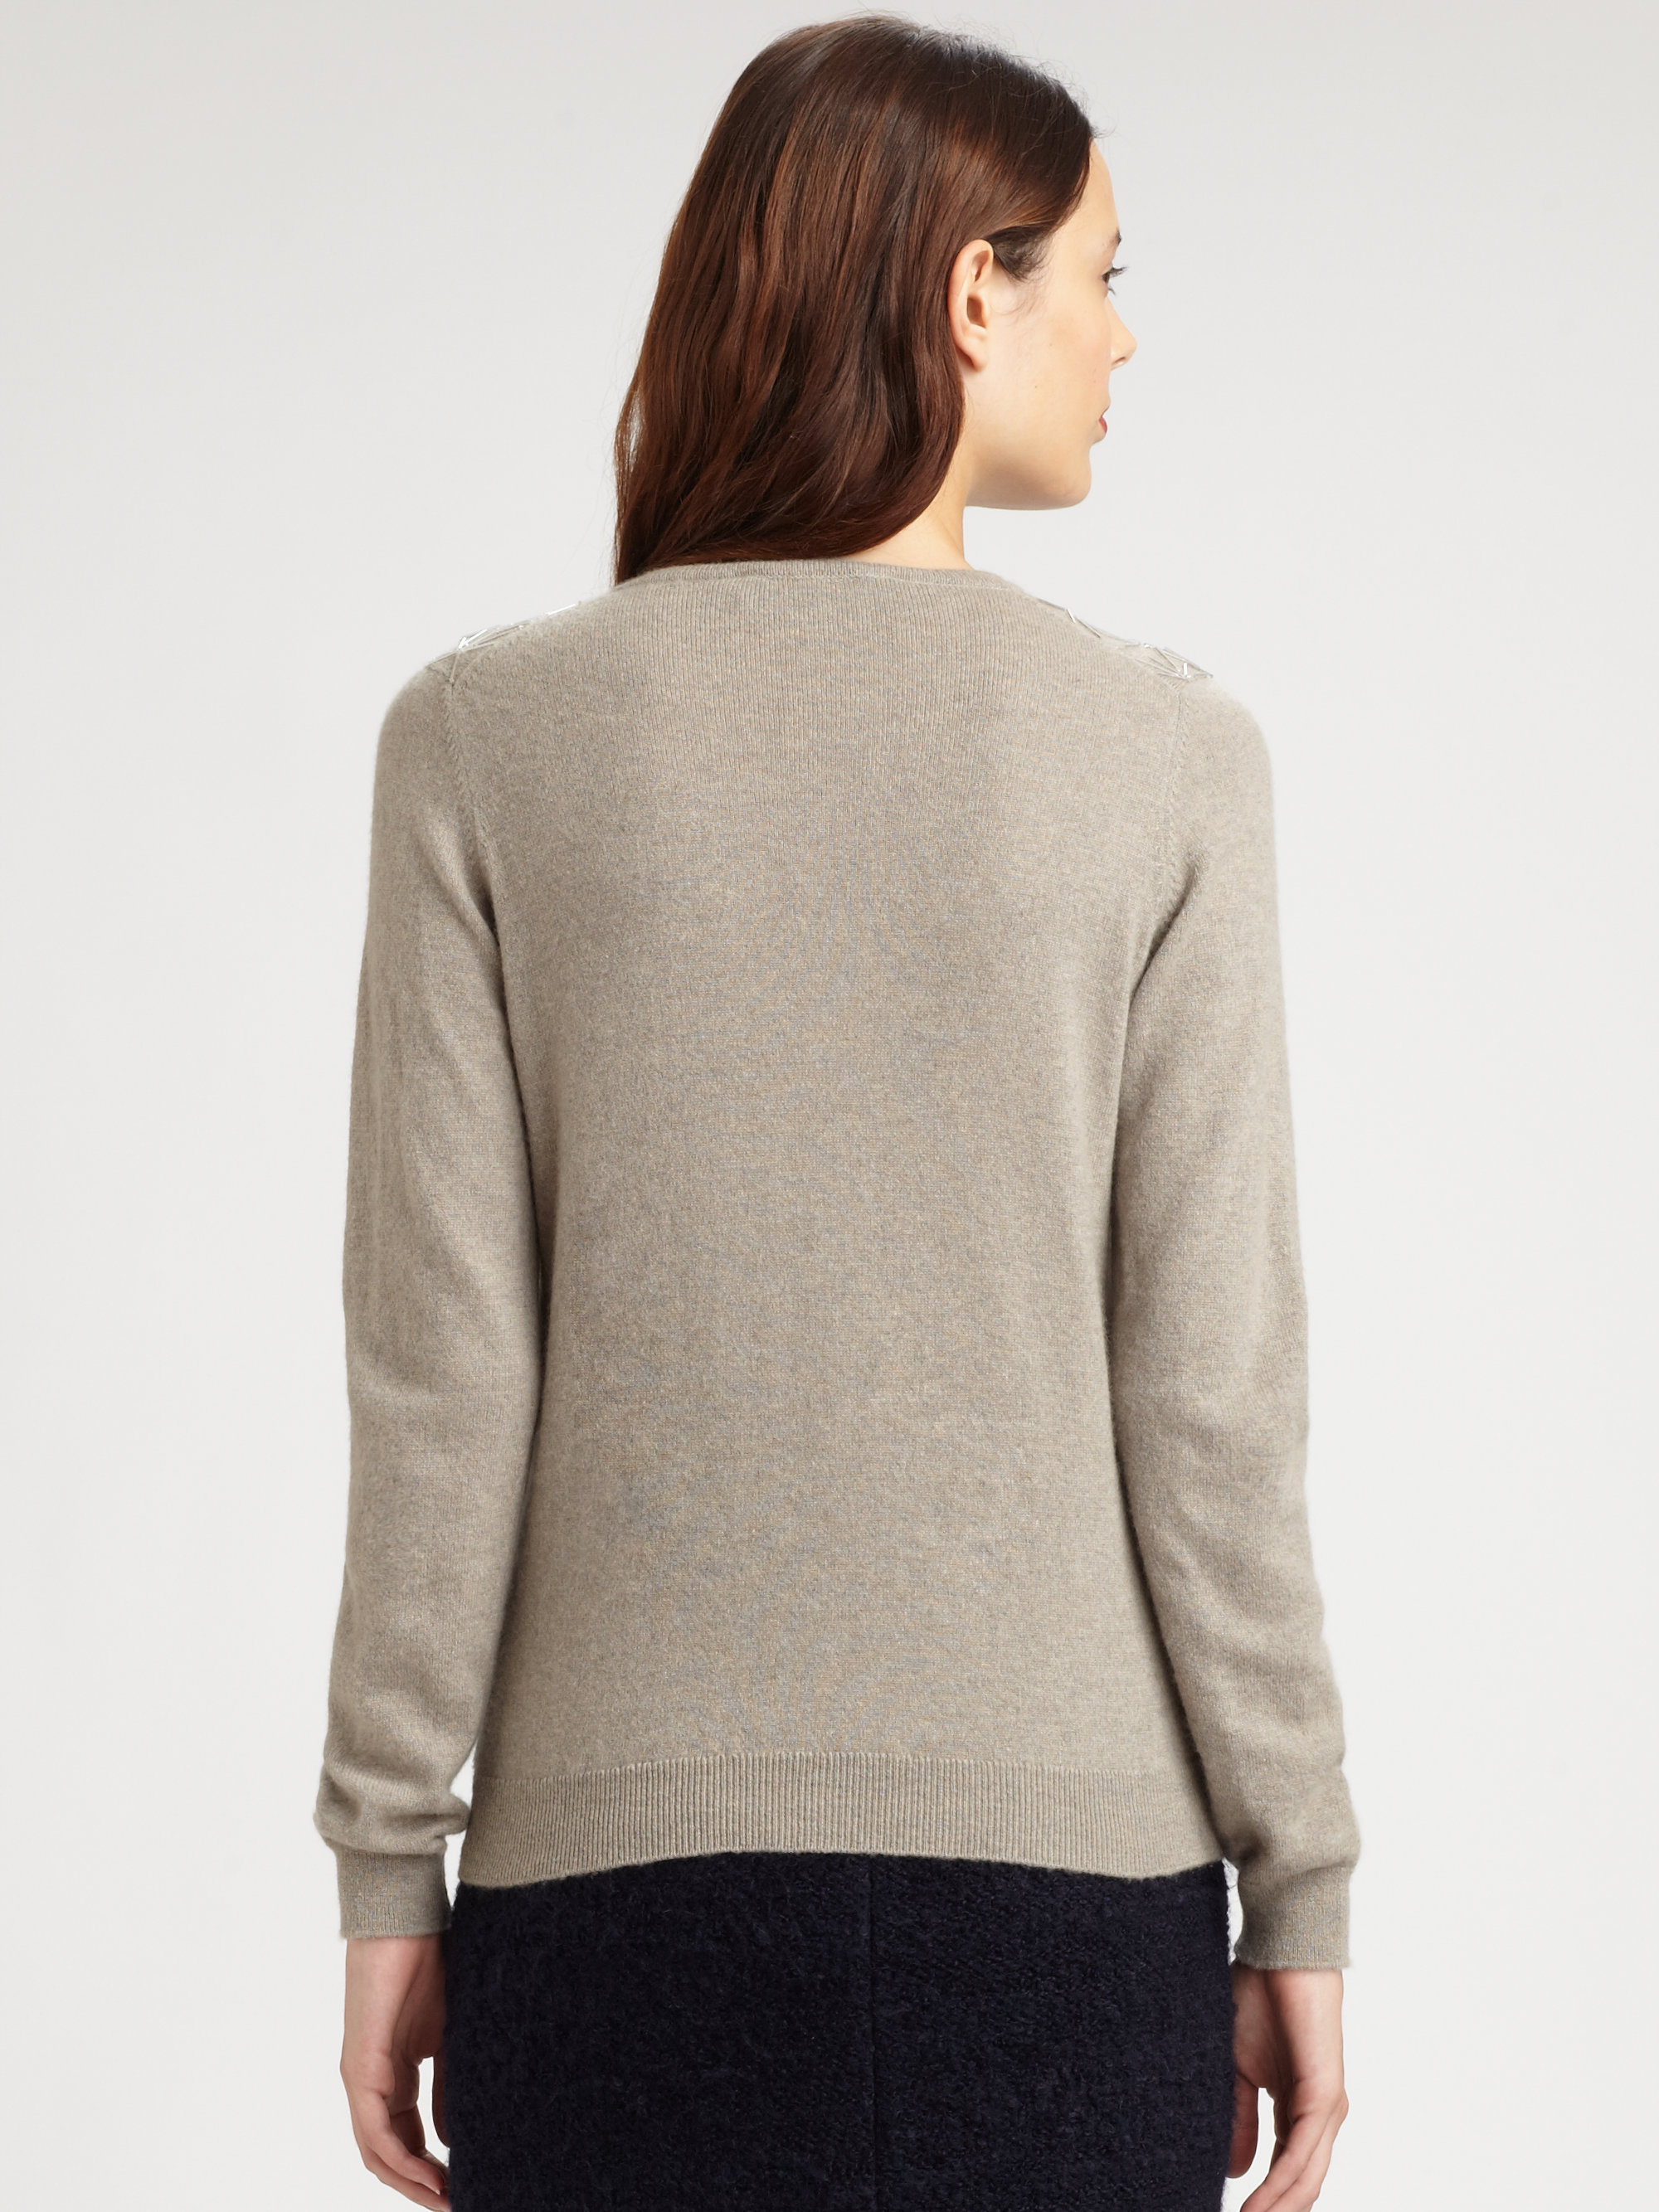 Pringle of scotland Beaded Cashmere Sweater in Gray | Lyst